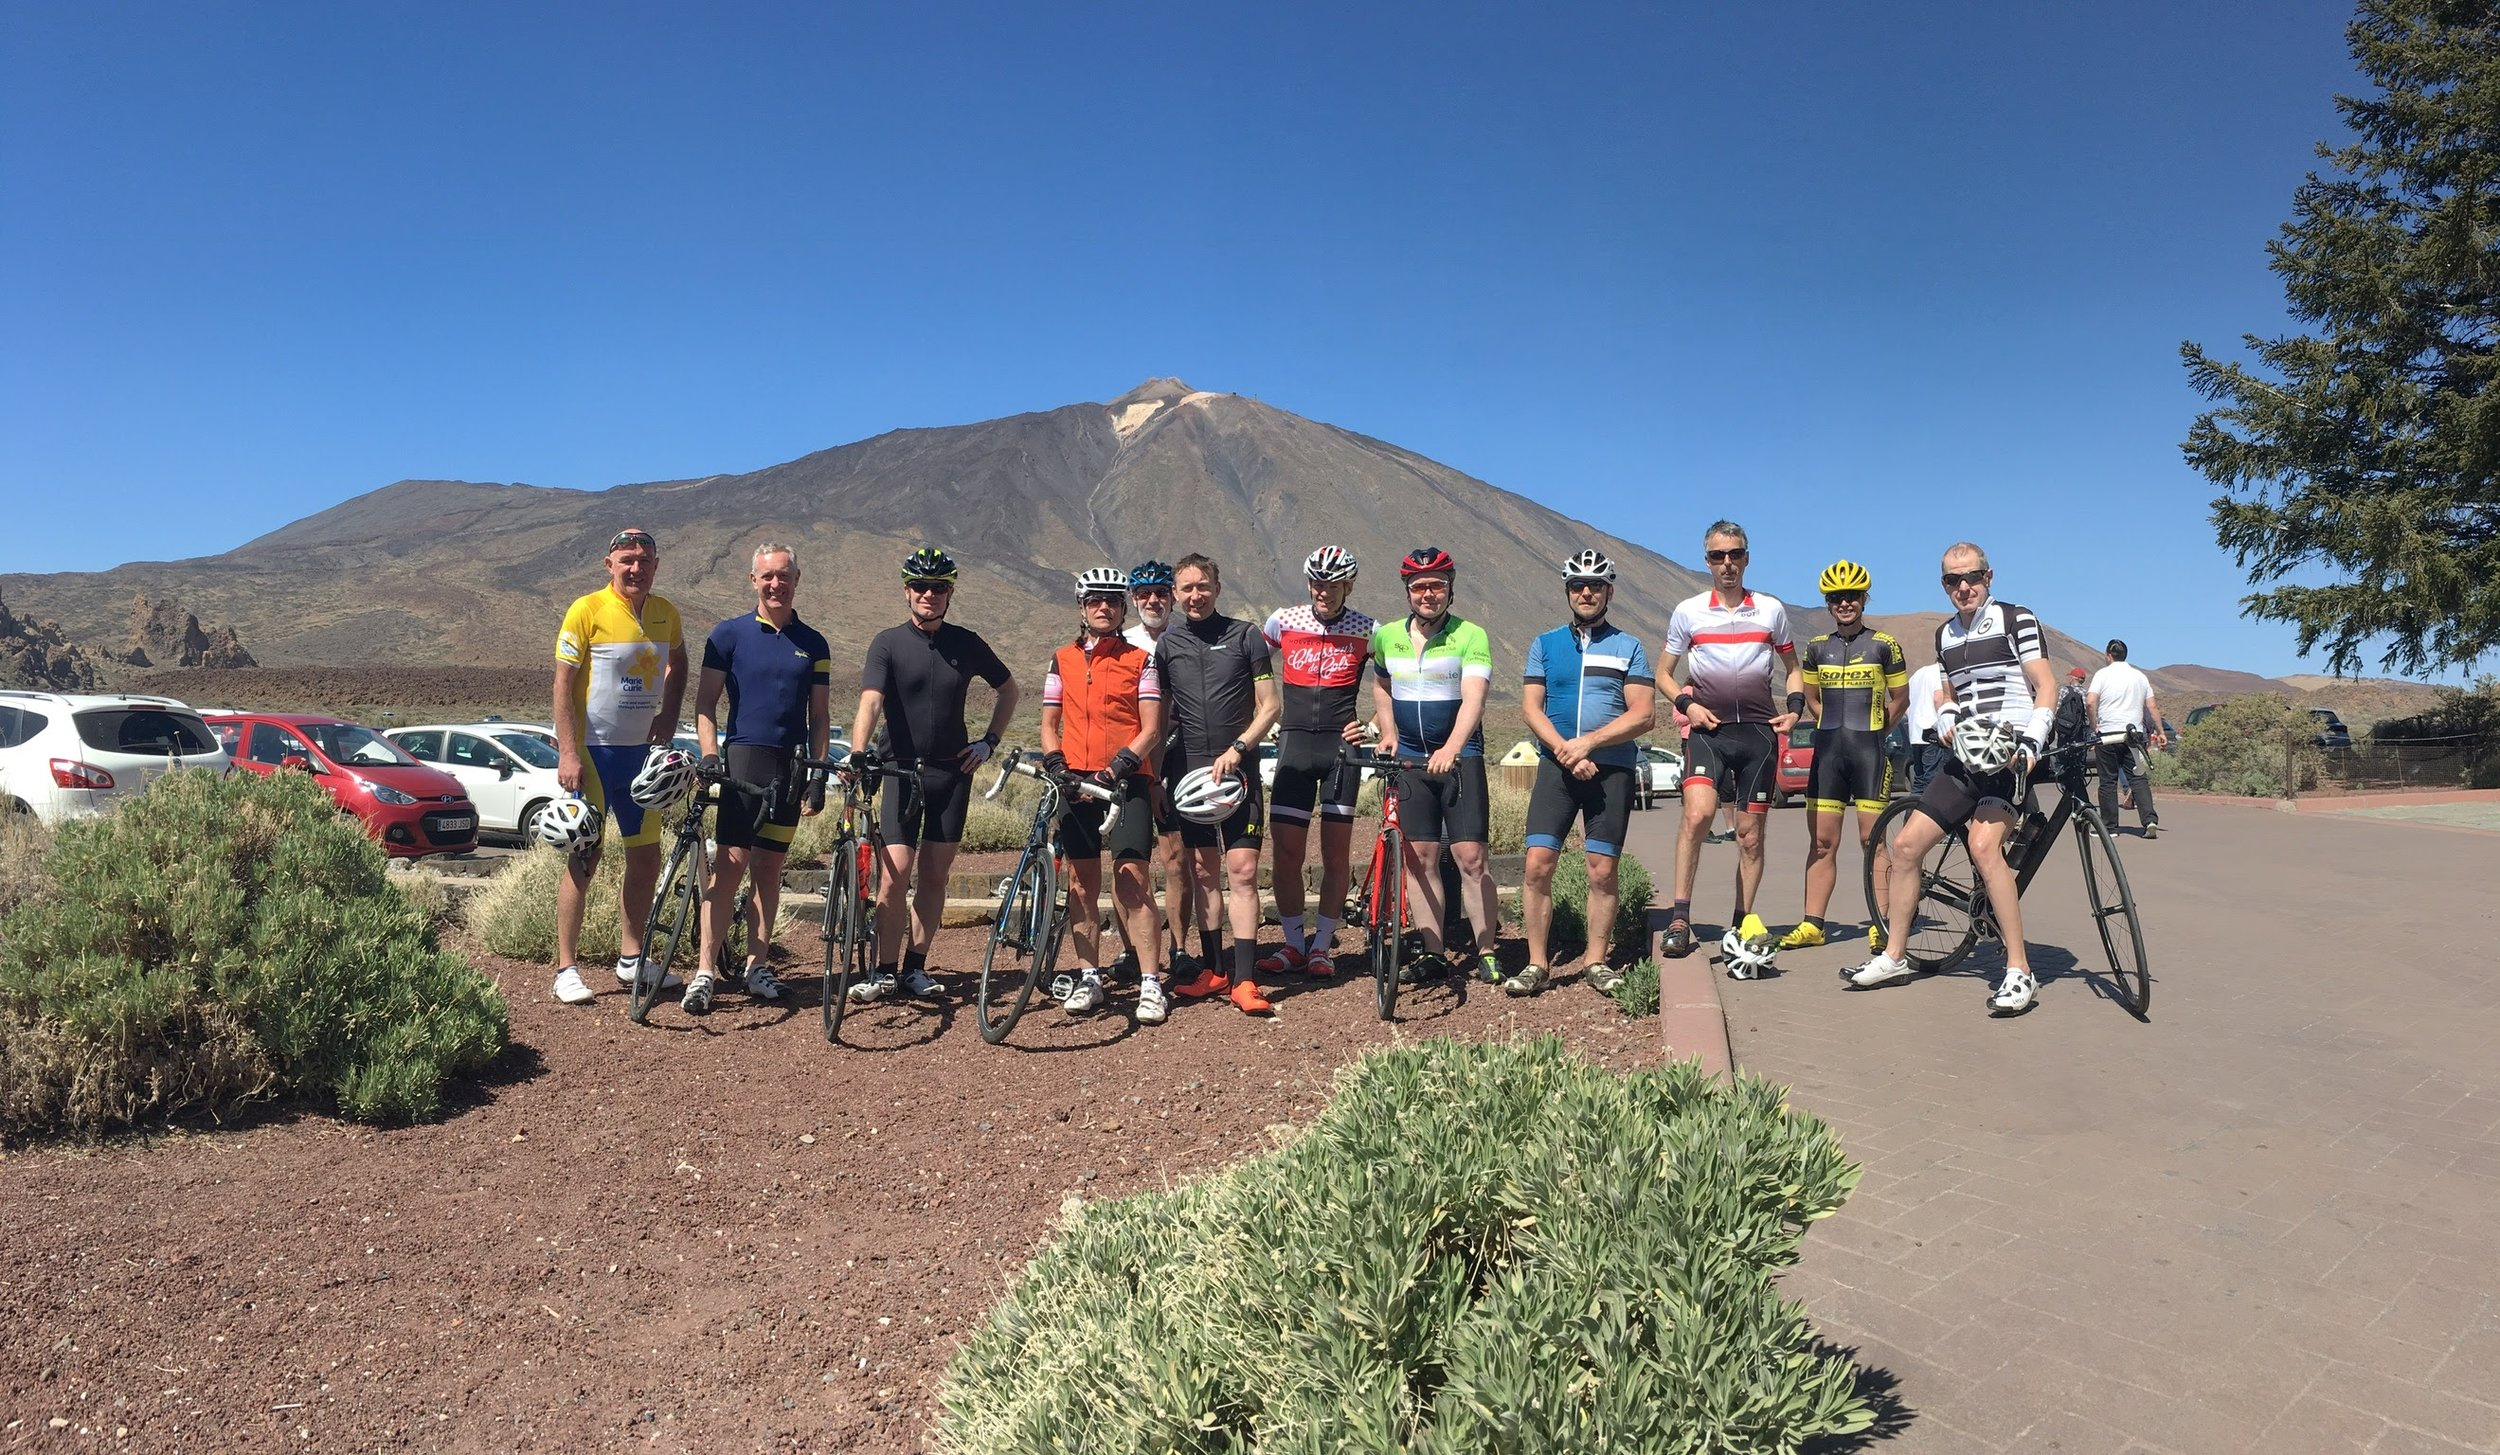 Mount Teide cycling Group